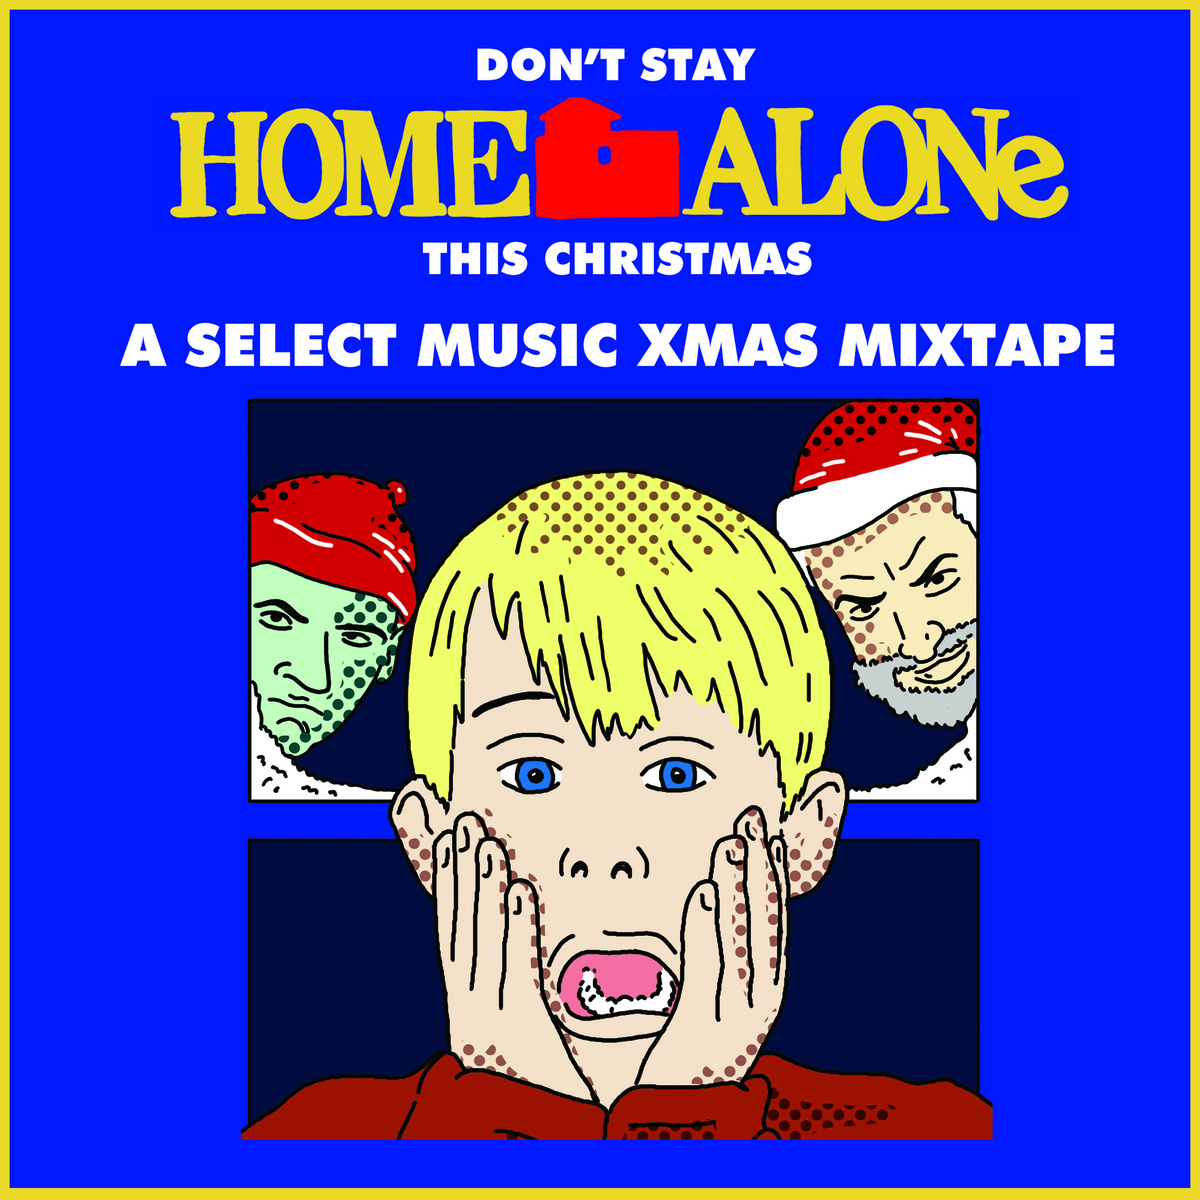 Don't Stay Home Alone This Christmas: A Select Music Xmas Mixtape